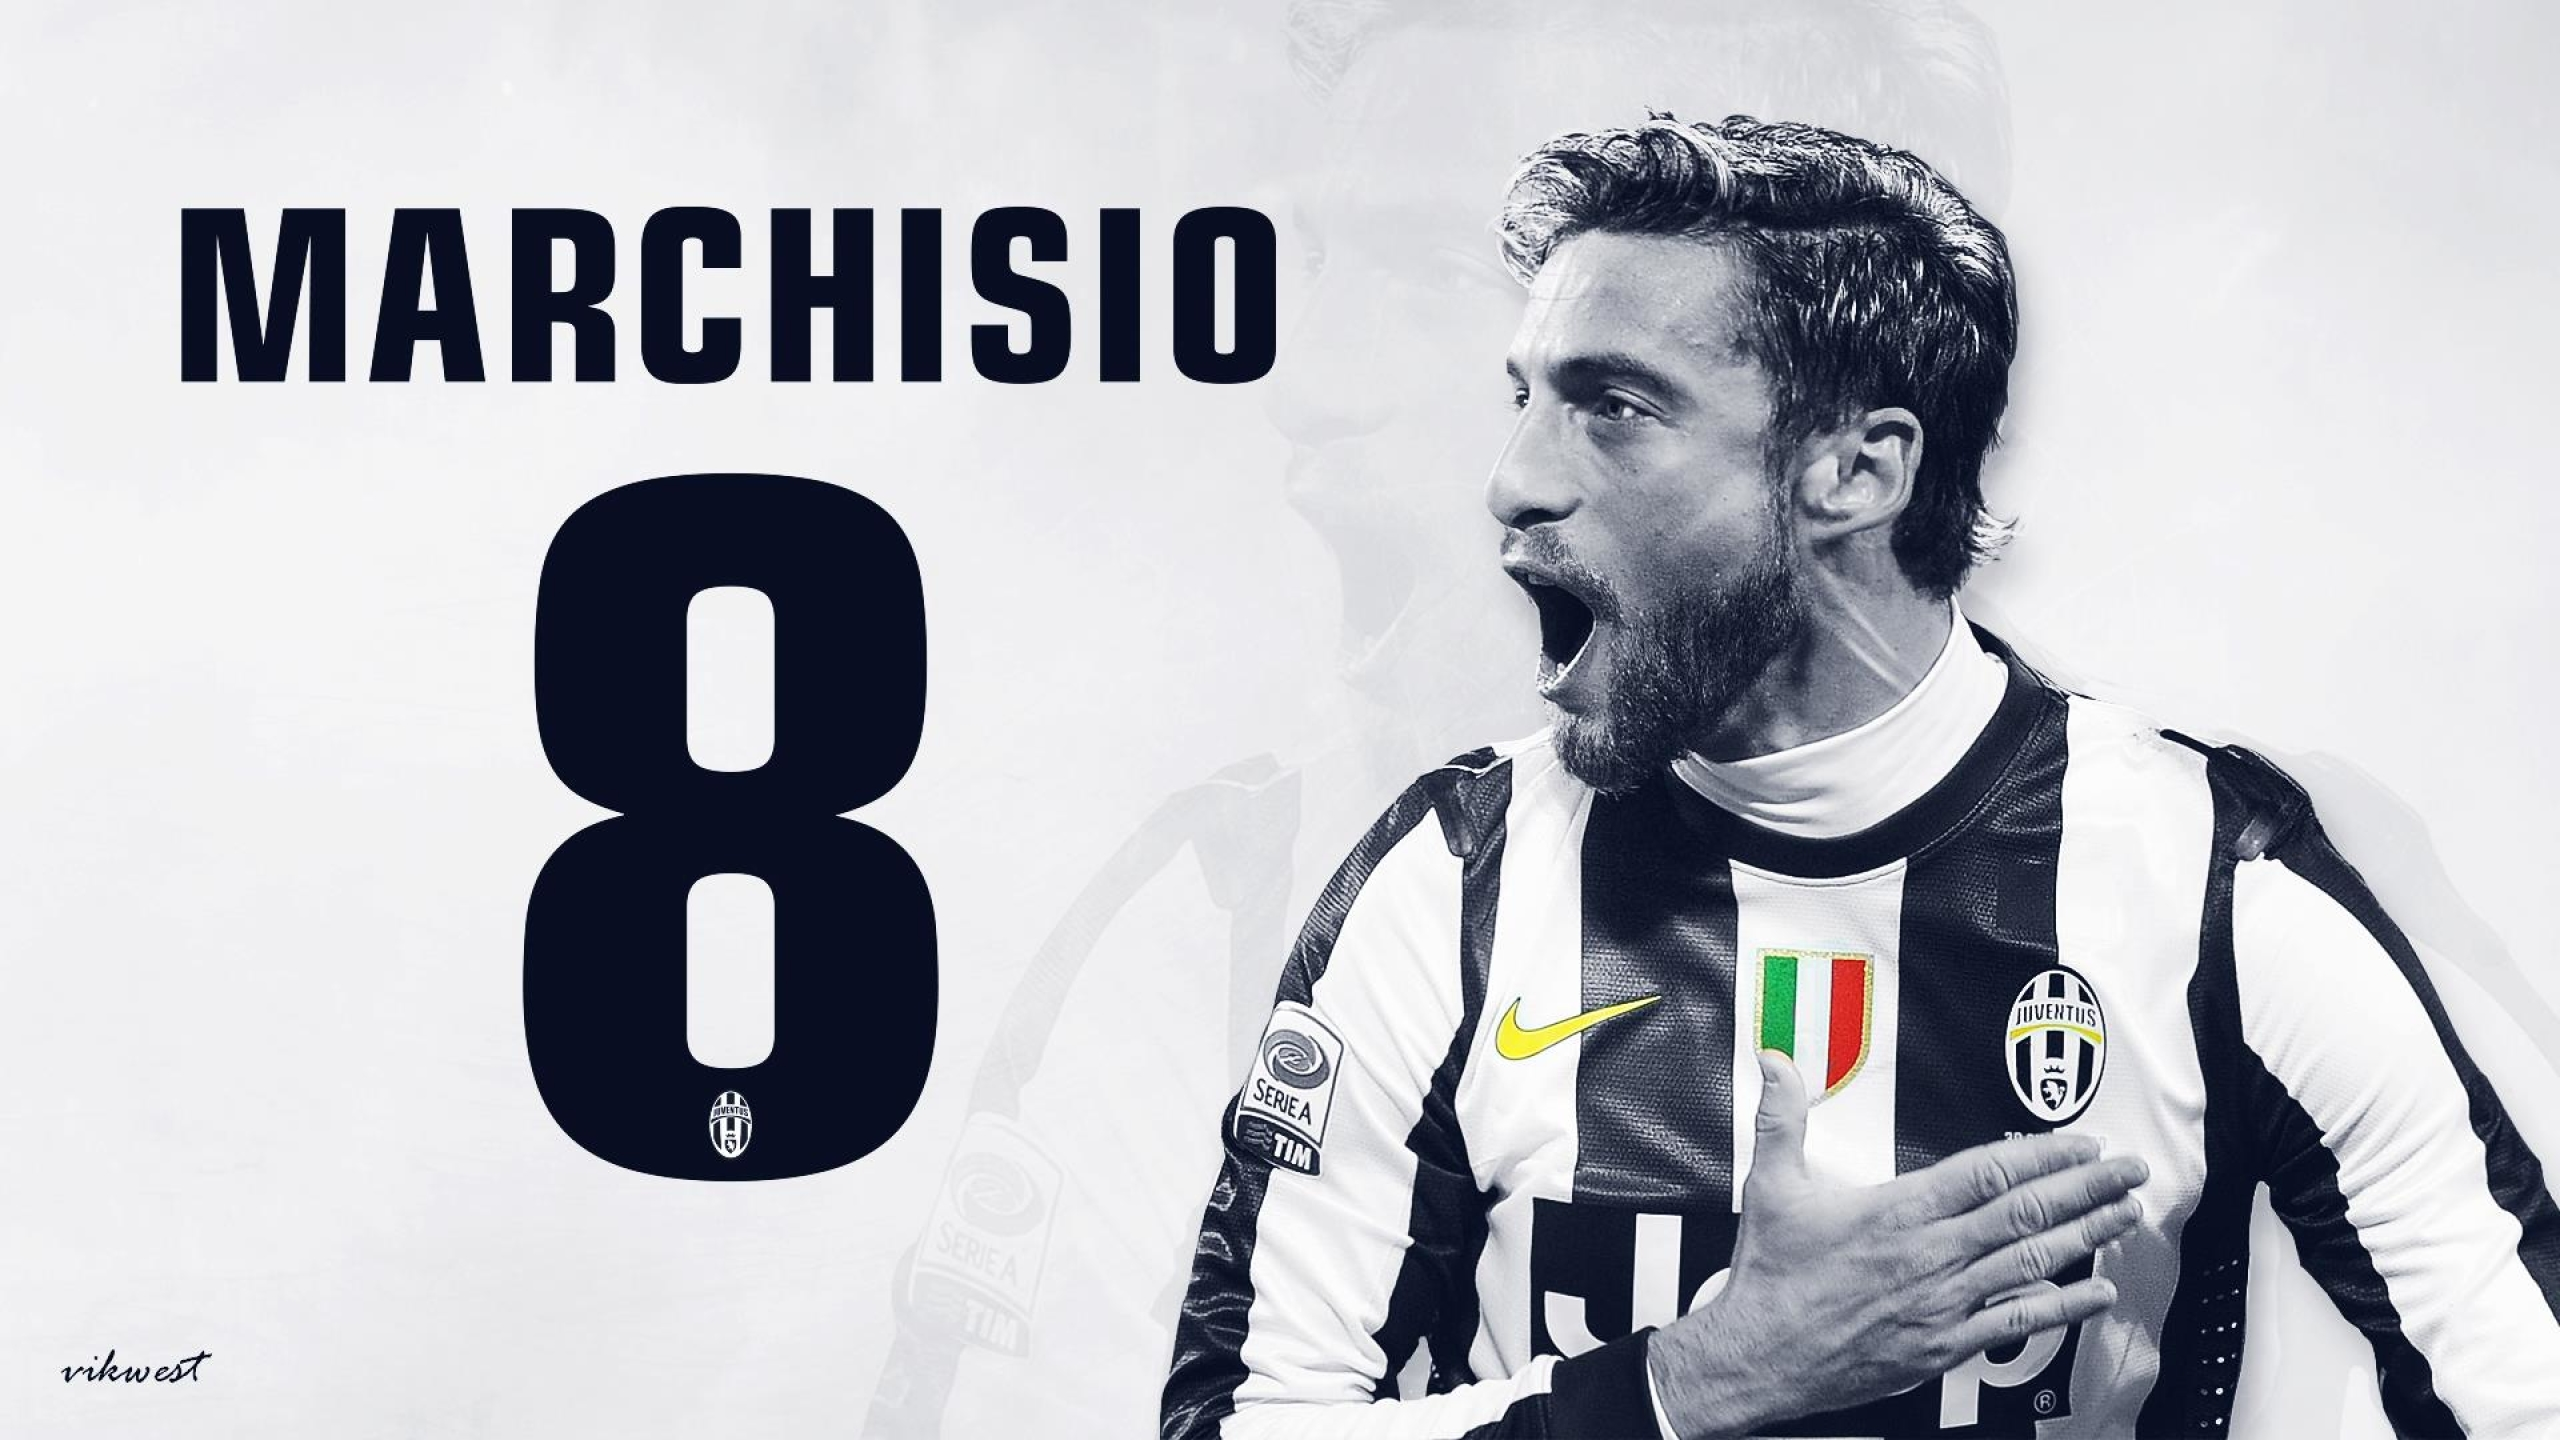 2560x1440 claudio marchisio football player juventus 1440p resolution wallpaper hd sports 4k wallpapers images photos and background 2560x1440 claudio marchisio football